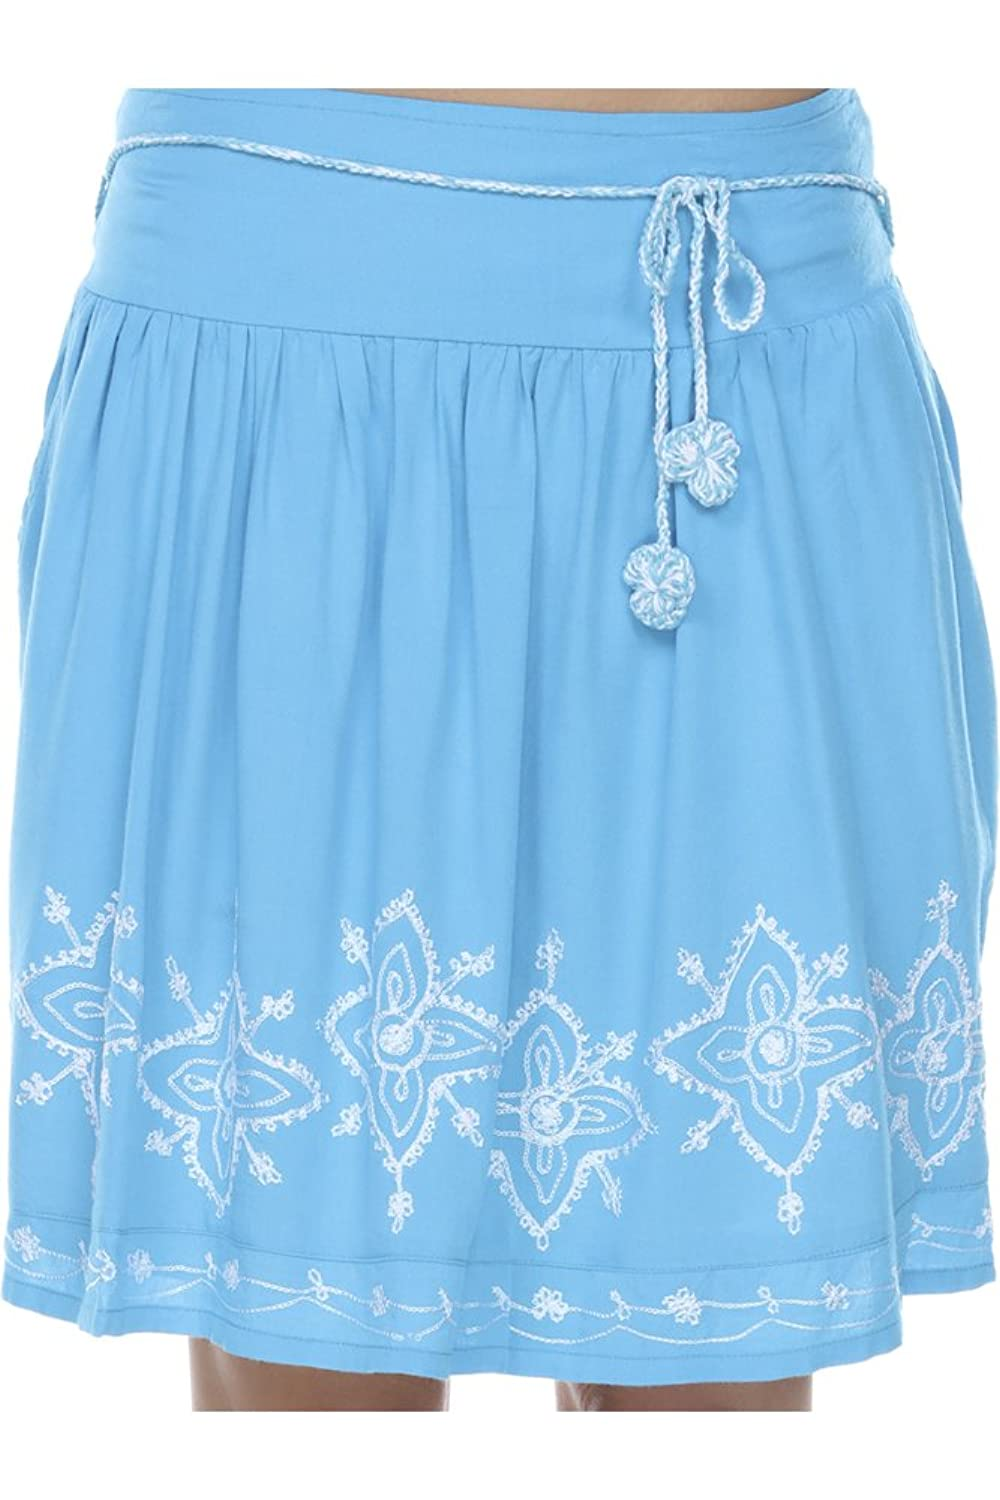 Santiki Darby Embroidered Mini Skirt With Crochet Belt - Turquoise